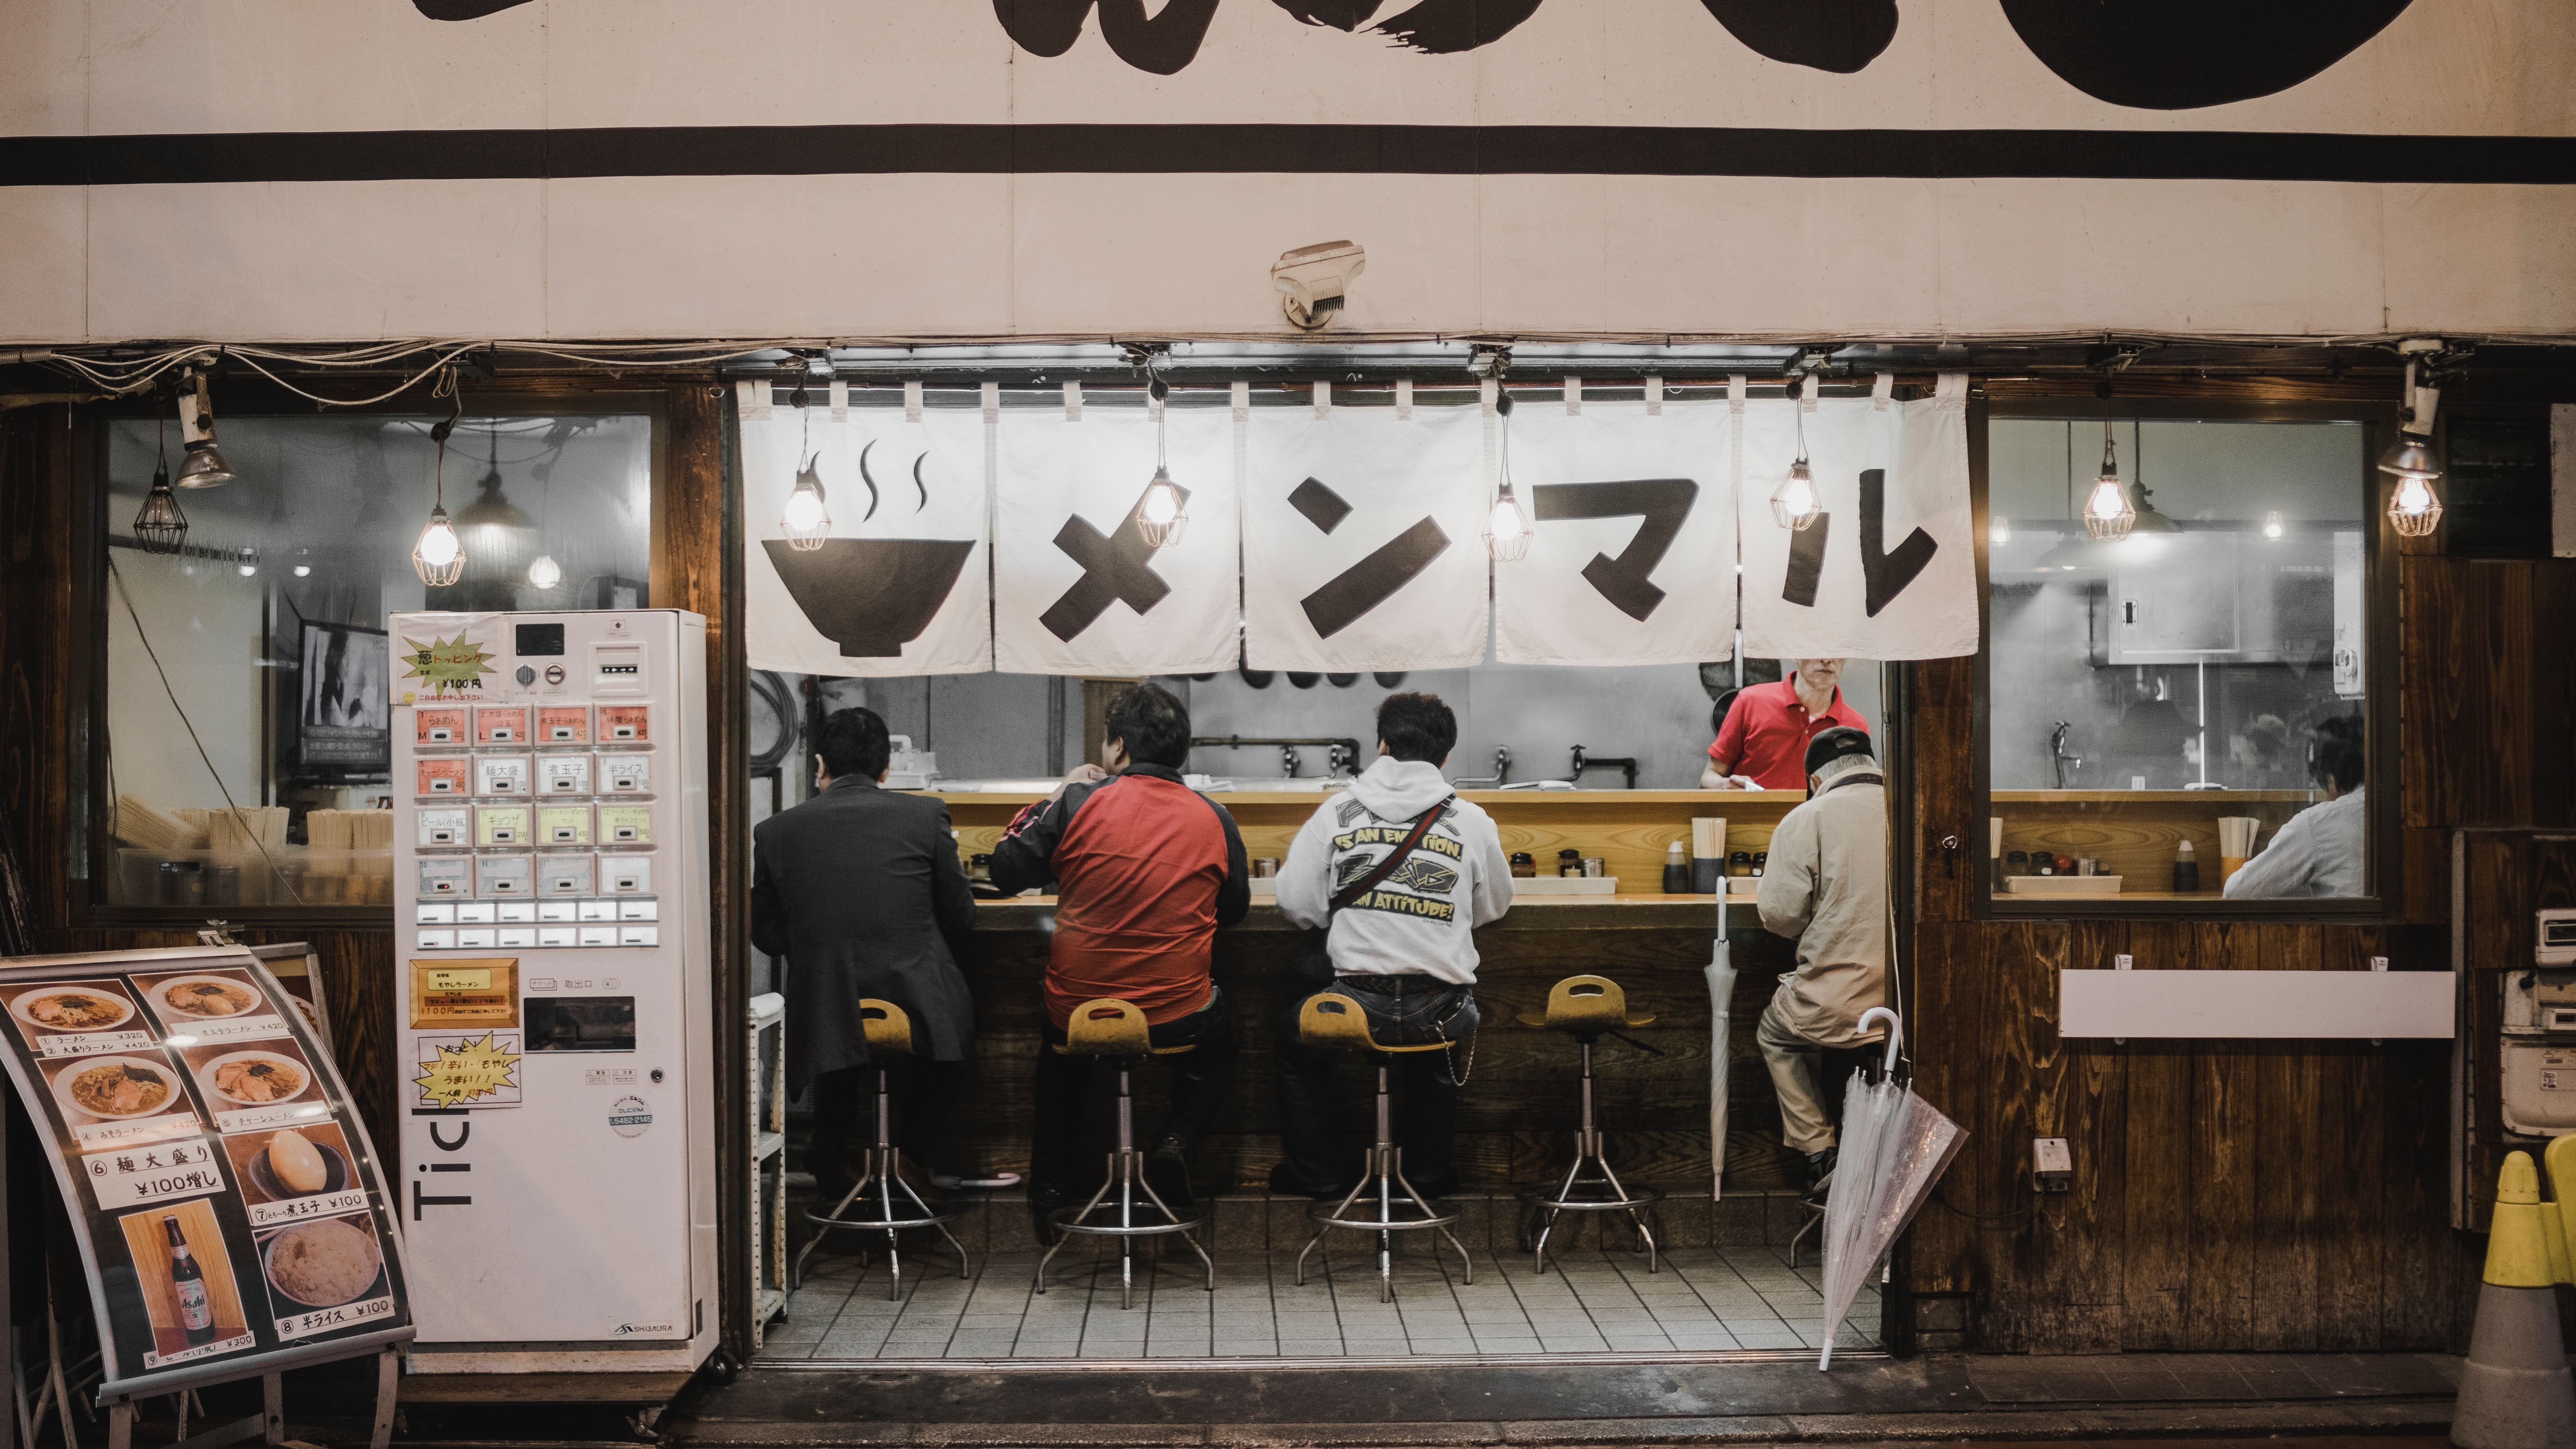 A Japan travel agency uses cookie-cutter itineraries which lack personalization